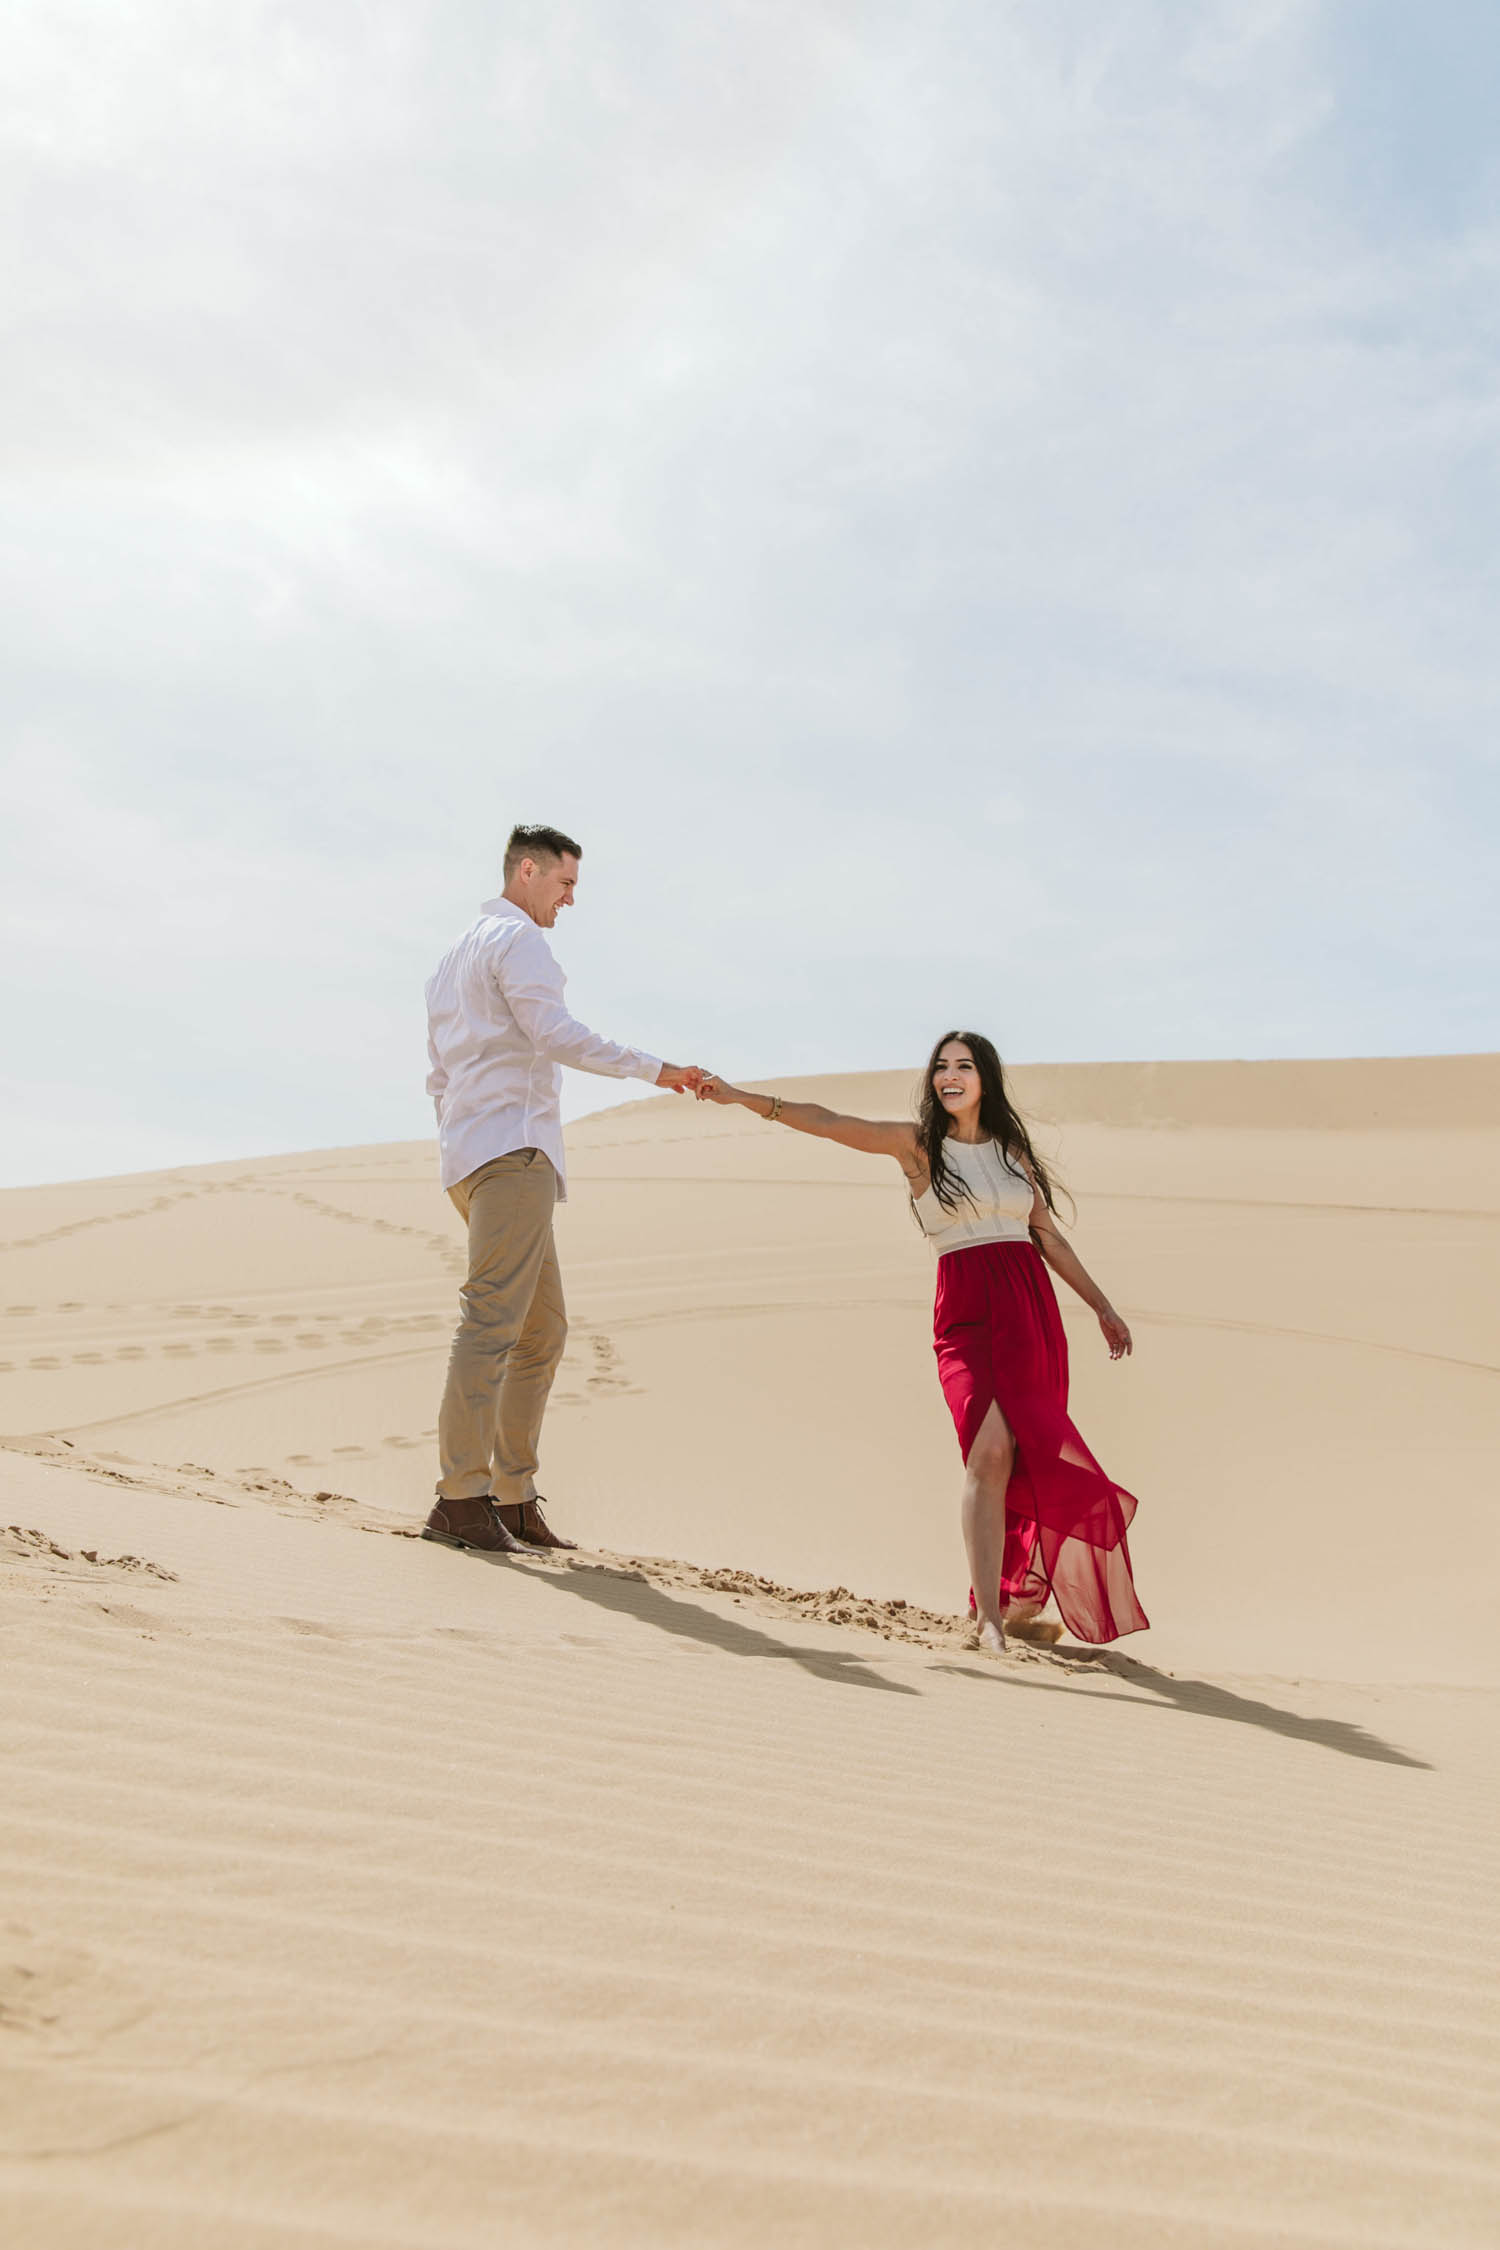 glamis_sand_dunes_couples_session_011.jpg